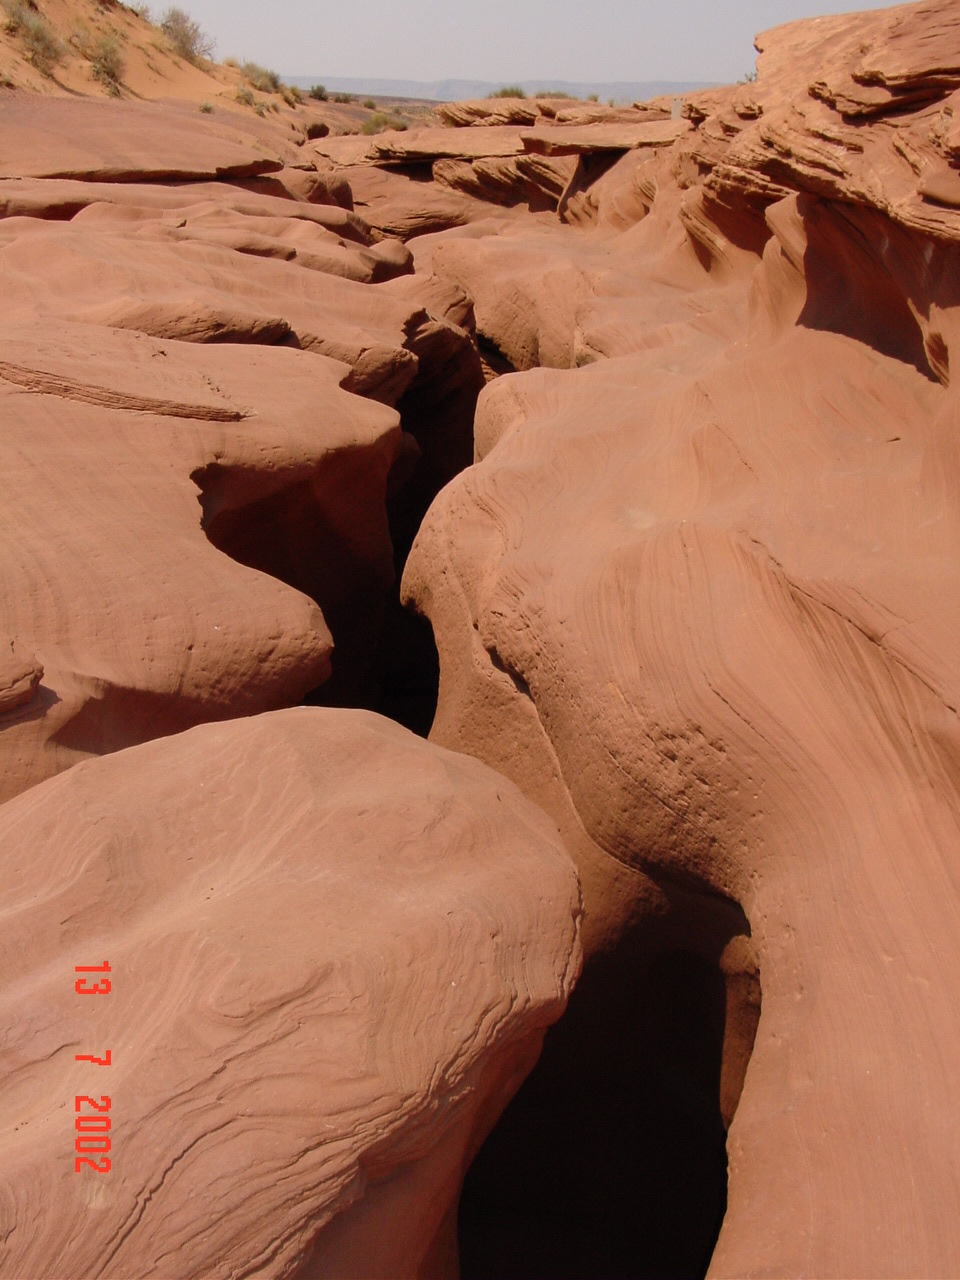 The entrance to Antelope Canyon